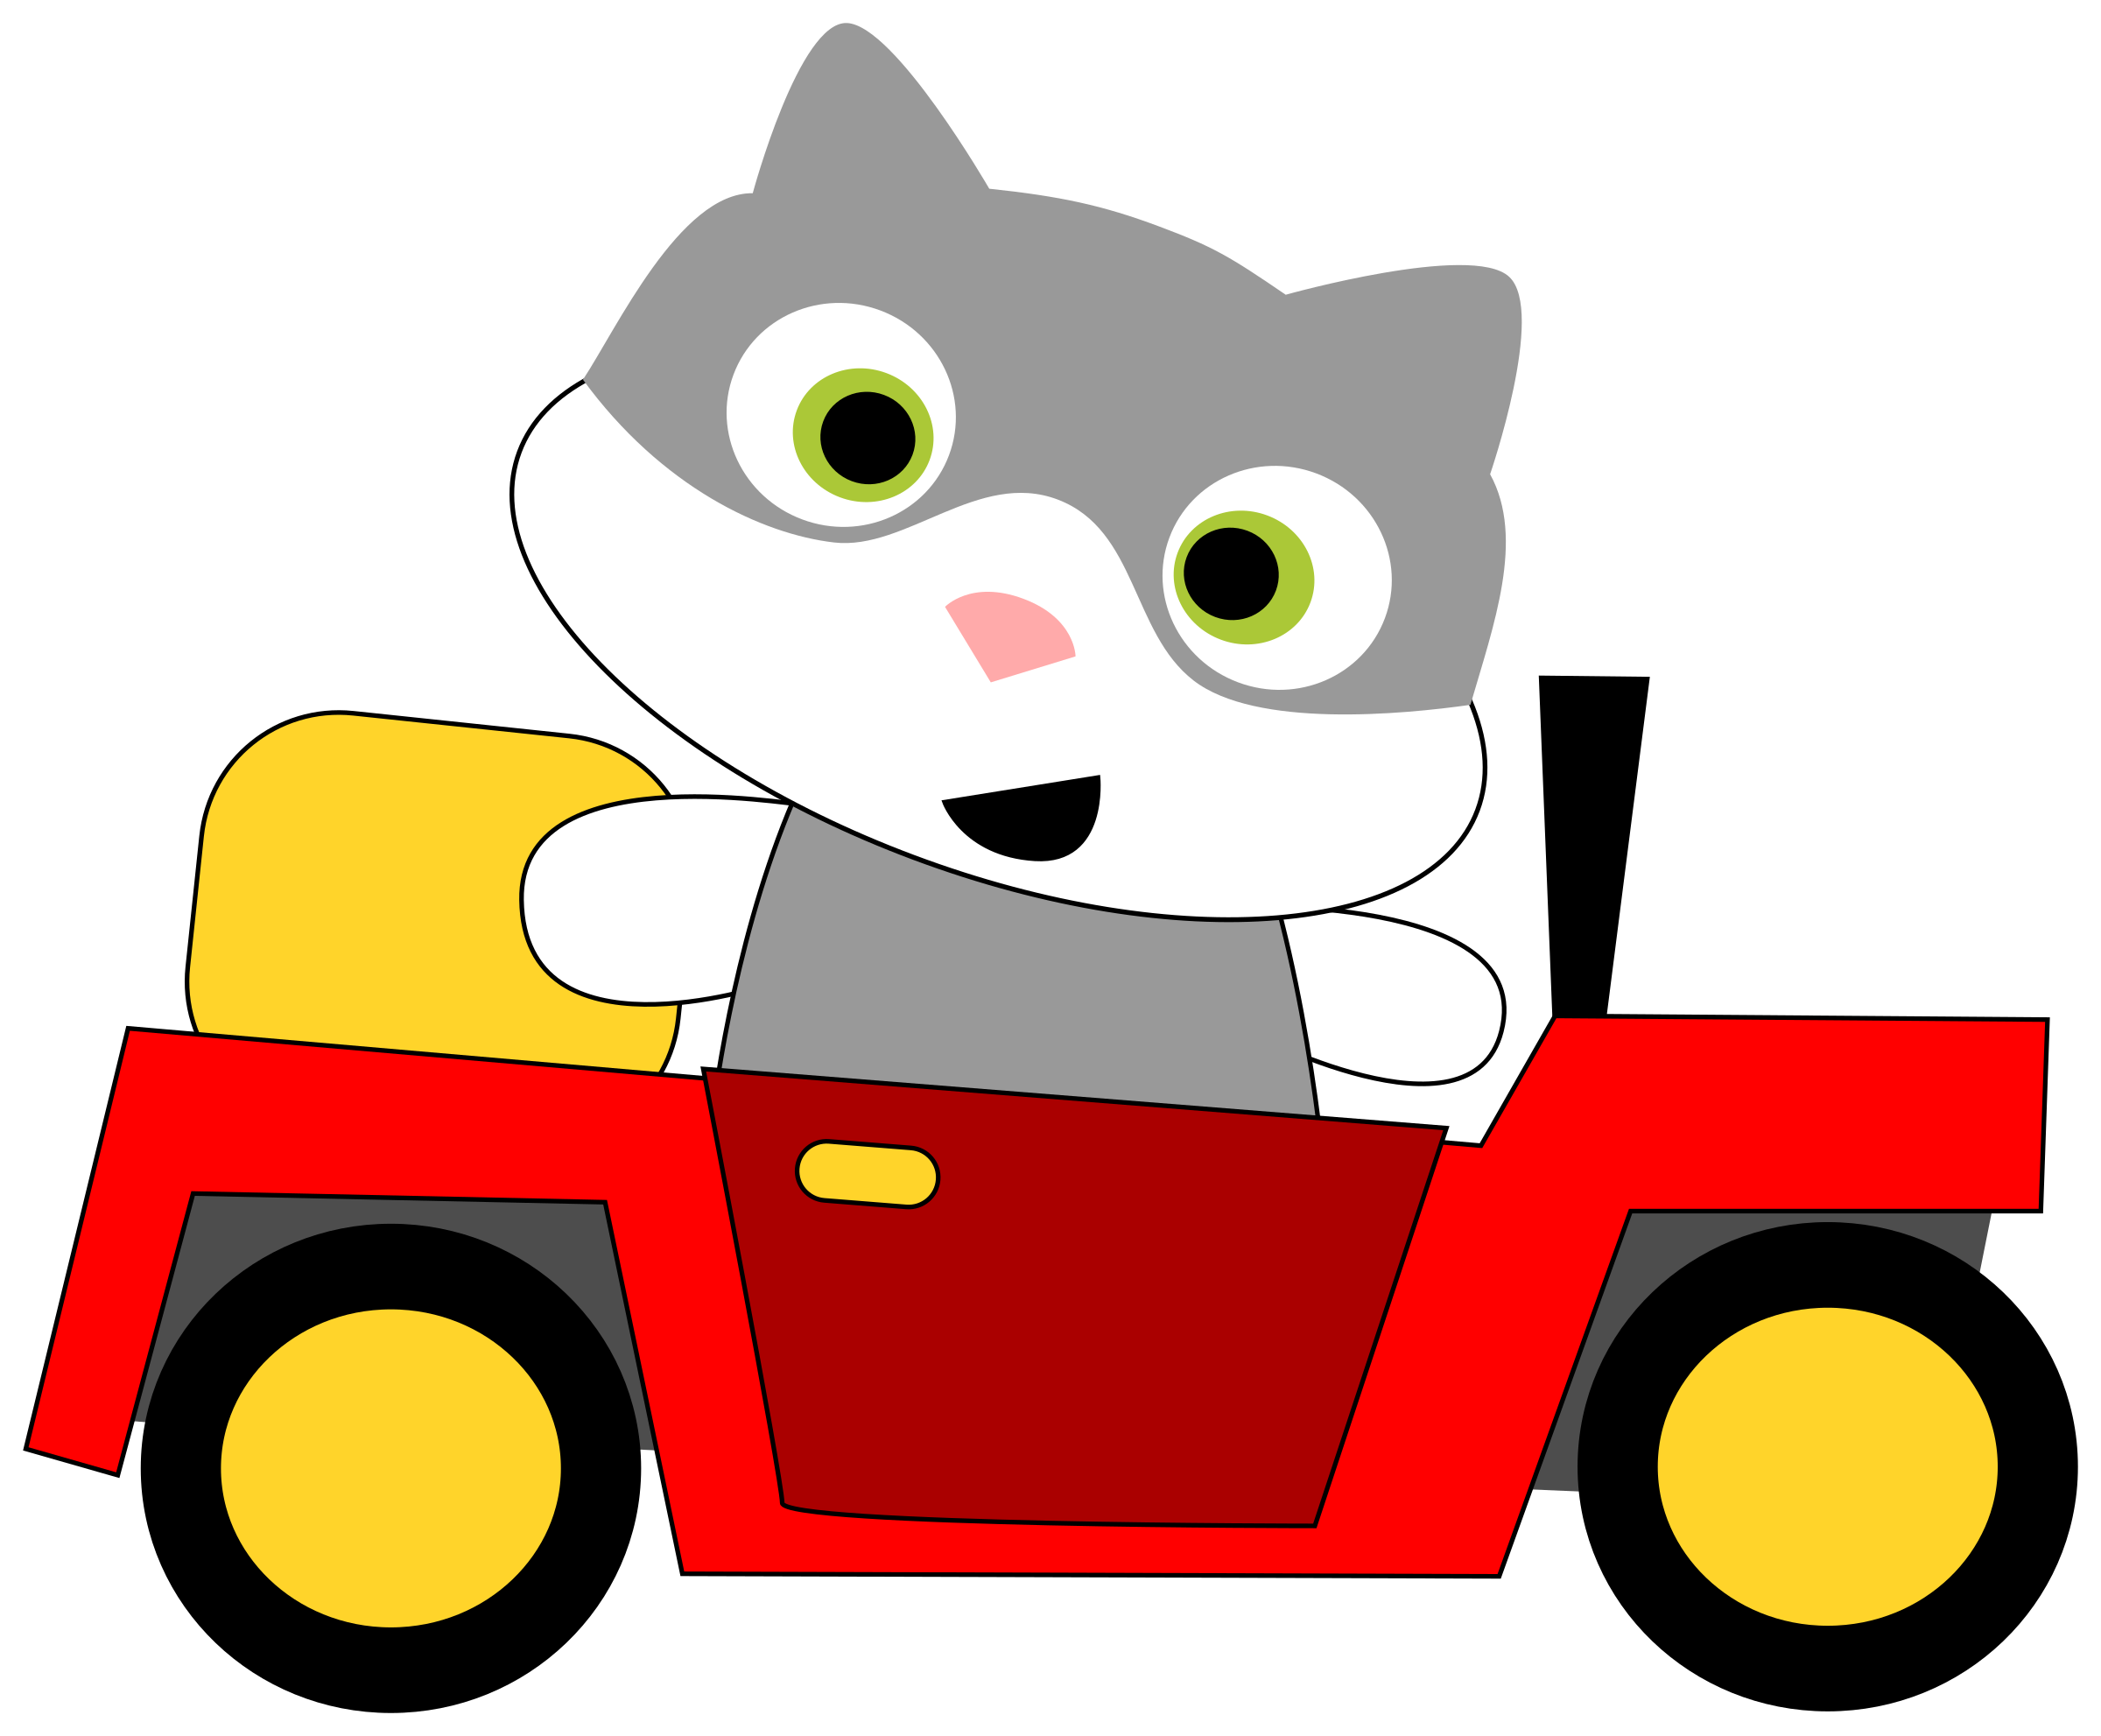 Car emissions clipart picture transparent Car Driving Clipart | Free download best Car Driving Clipart on ... picture transparent